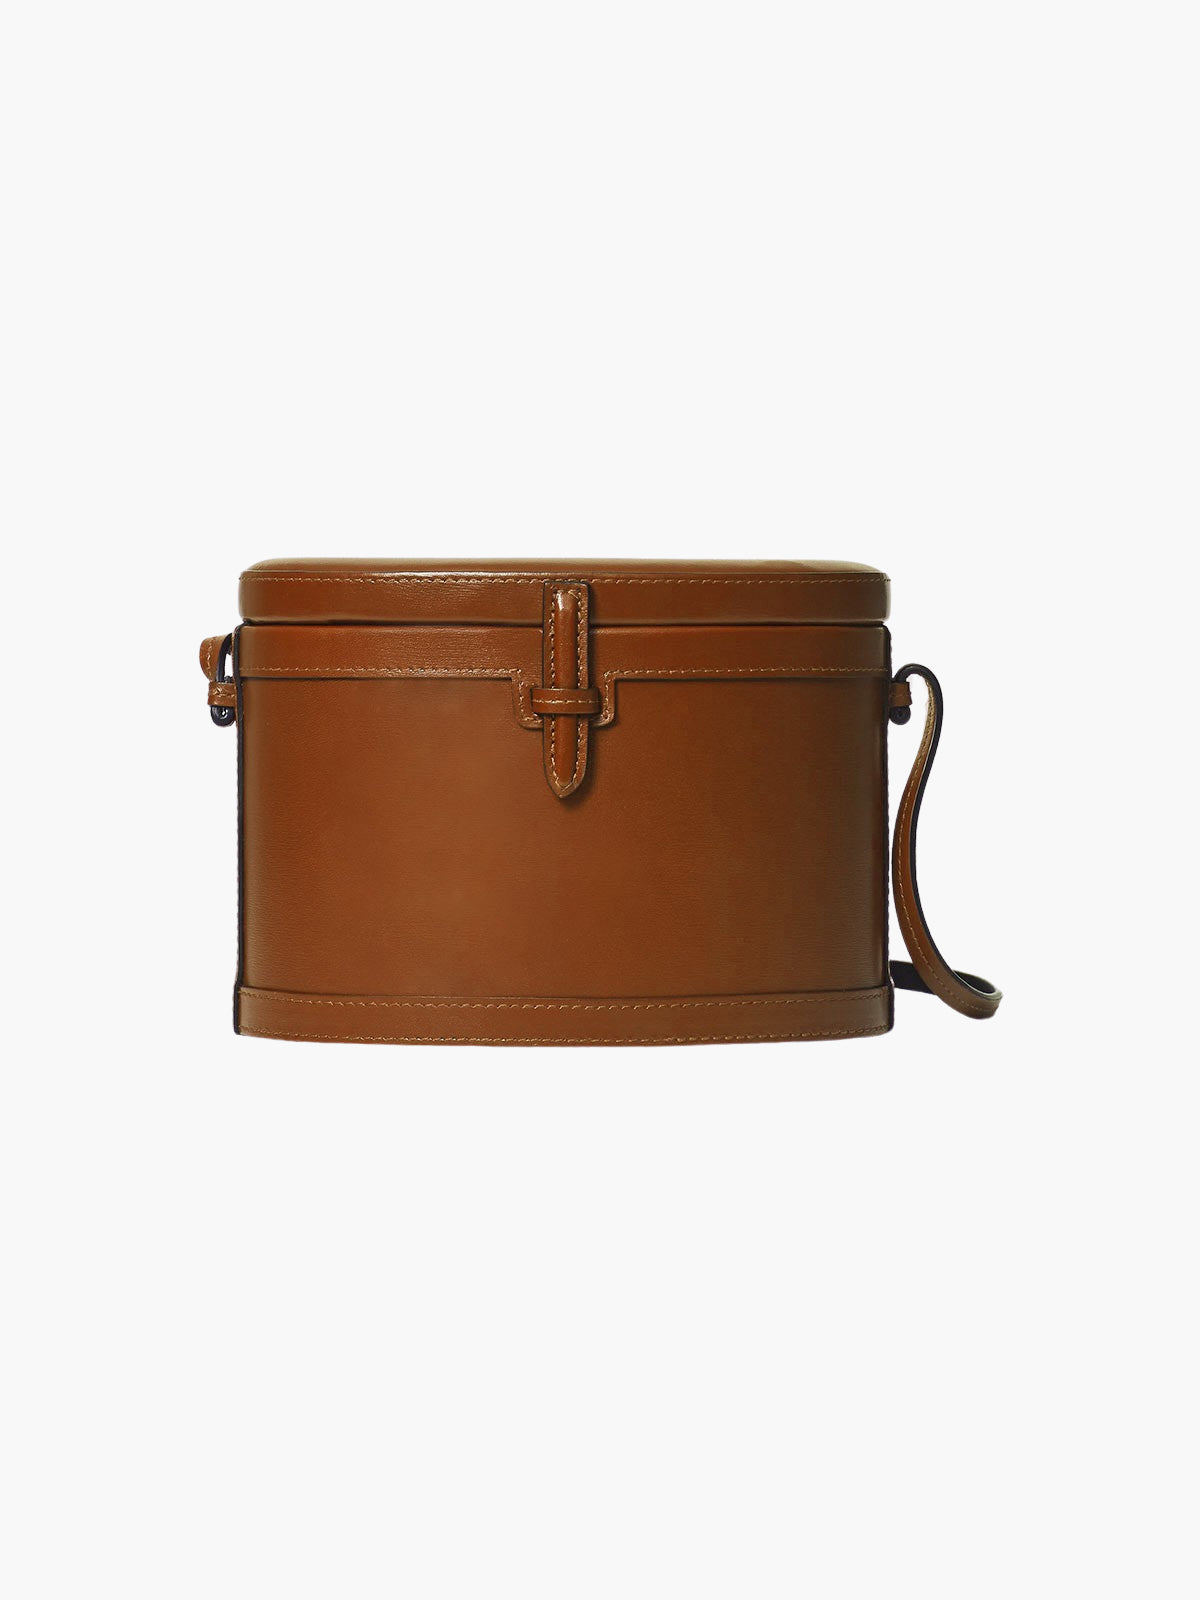 Round Trunk Bag | Cognac Round Trunk Bag | Cognac